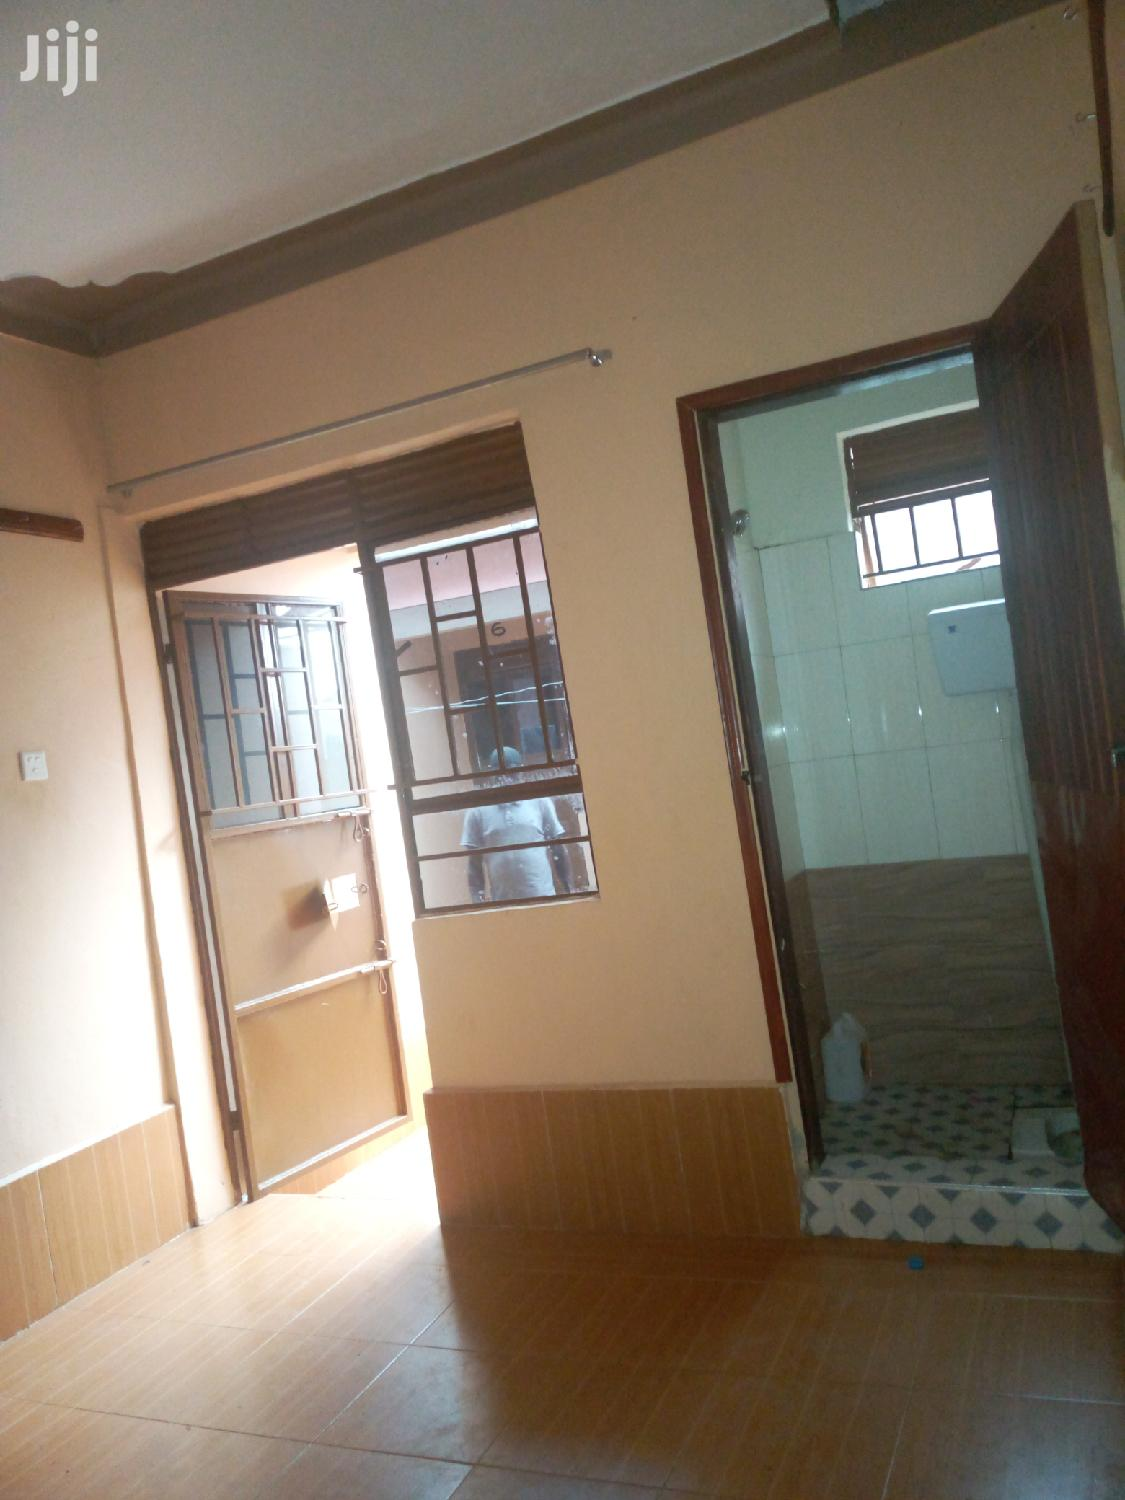 Single Room For Rent For In Kitintale Mutungo Road | Houses & Apartments For Rent for sale in Kampala, Central Region, Uganda